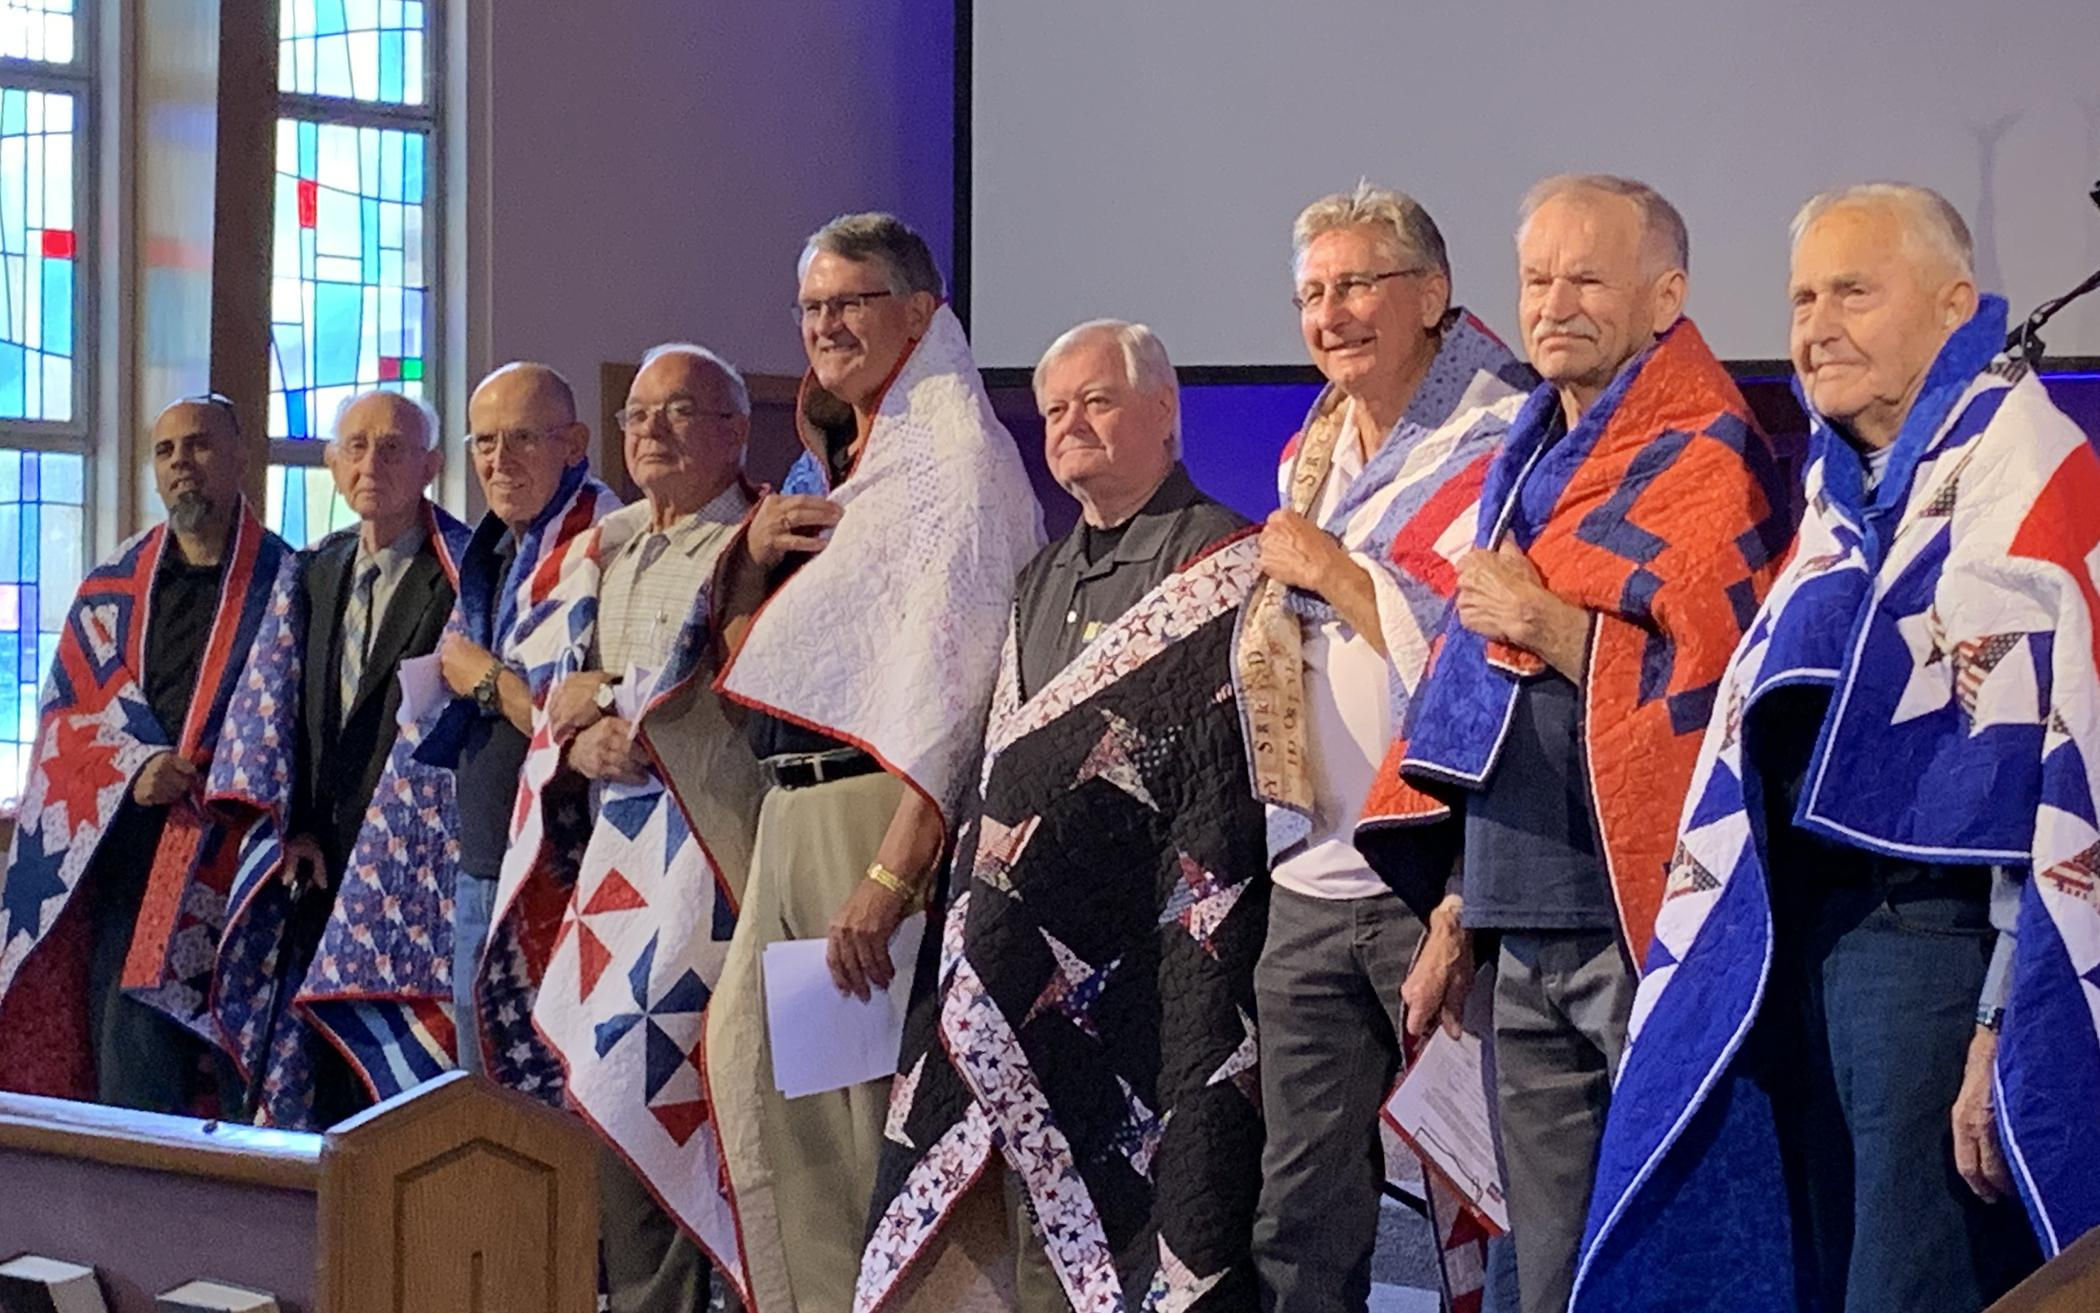 California Congregation Honors VeteransWith Quilts